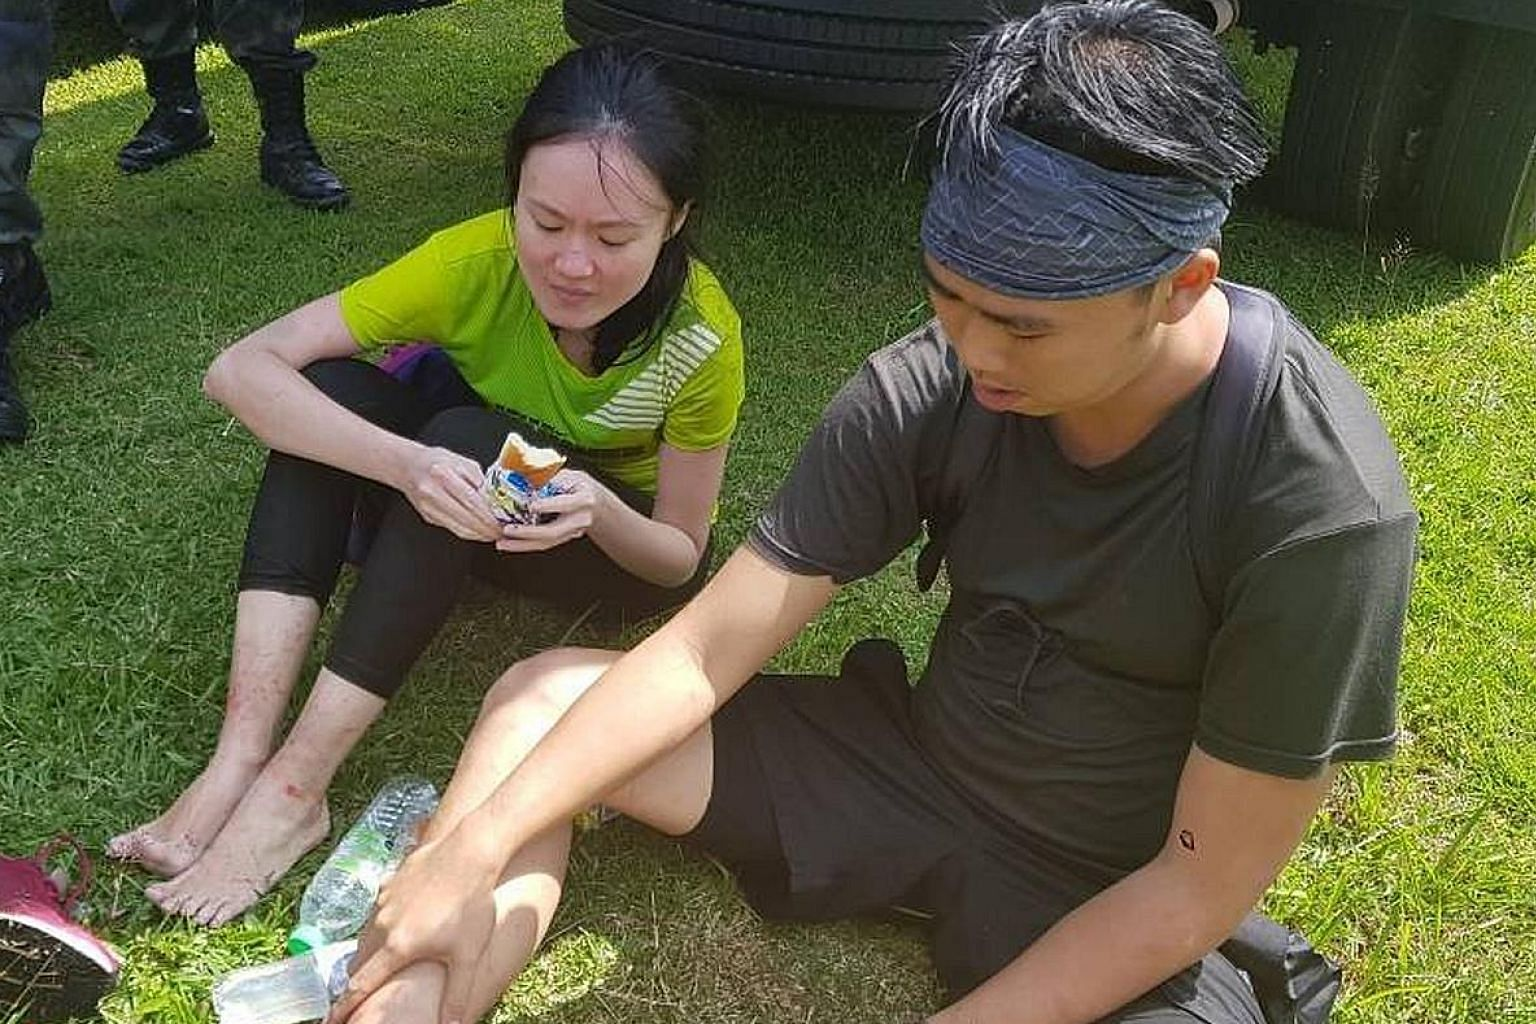 Mr Dominick Tan Chang Xiang and Ms Lum Jie were rescued by boat yesterday morning after rescuers in a helicopter spotted them near Ulu Choh Dam. They were taken to Pontian Hospital. The doctor who examined them said they had minor scratches and were